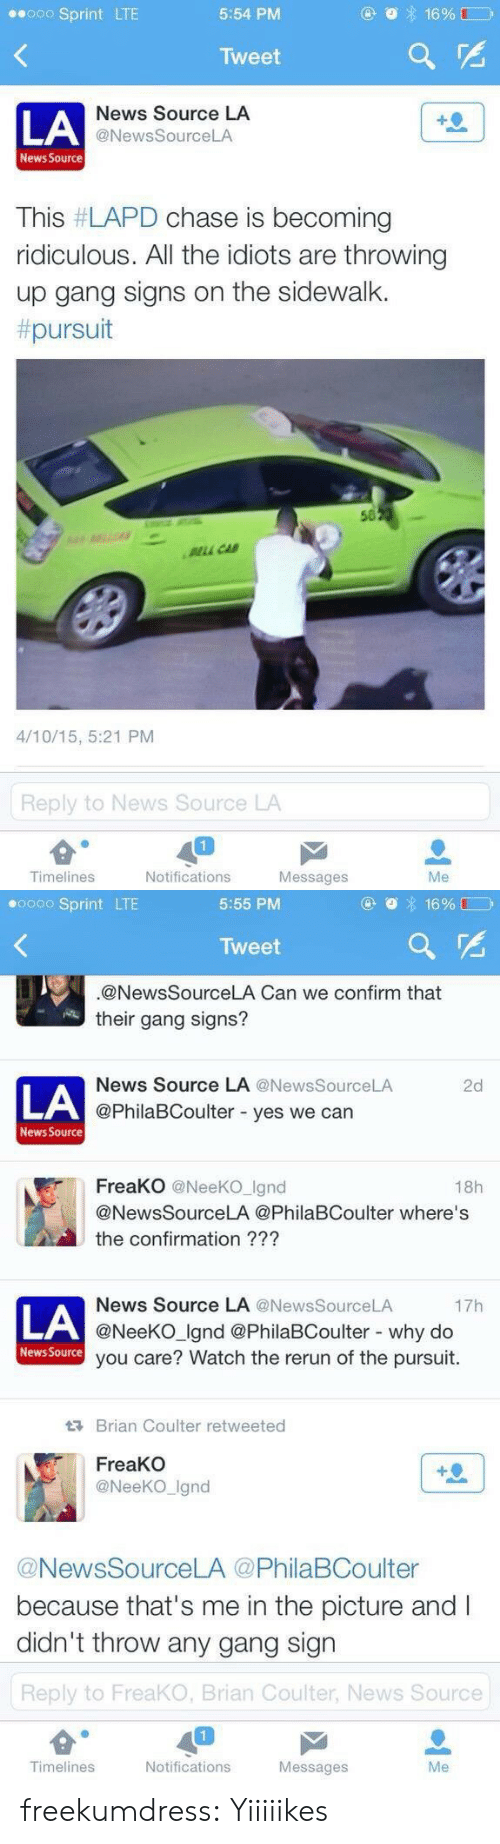 News, Tumblr, and Gang: Sprint LTE  5:54 PM  Tweet  LA  News Source LA  @NewsSourceLA  News Source  This #LAPD chase is becoming  ridiculous. All the idiots are throwing  up gang signs on the sidewalk.  pursuit  50  LL CA  4/10/15, 5:21 PM  Reply to News Source LA  Timelines  Notifications  Messages  Me   0 Sprint LTE  5:55 PM  Tweet  @NewsSourceLA Can we confirm that  their gang signs?  News Source LA @News SourceLA  2d  LA  @PhilaBCoulter - yes we can  News Source  FreaKO @NeeKO Ignd  18h  @NewsSourceLA @PhilaBCoulter where's  the confirmation ???  News Source LA @NewsSourceLA  @NeeKO Ignd @PhilaBCoulter - why do  you care? Watch the rerun of the pursuit.  17h  LA  News Source  Brian Coulter retweeted  FreaKO  @NeeKO_Ignd  @NewsSourceLA @PhilaBCoulter  because that's me in the picture and I  didn't throw any gang sign  Reply to FreaKO, Brian Coulter, News Source  Timelines  Notifications  Messages  Me freekumdress: Yiiiiikes